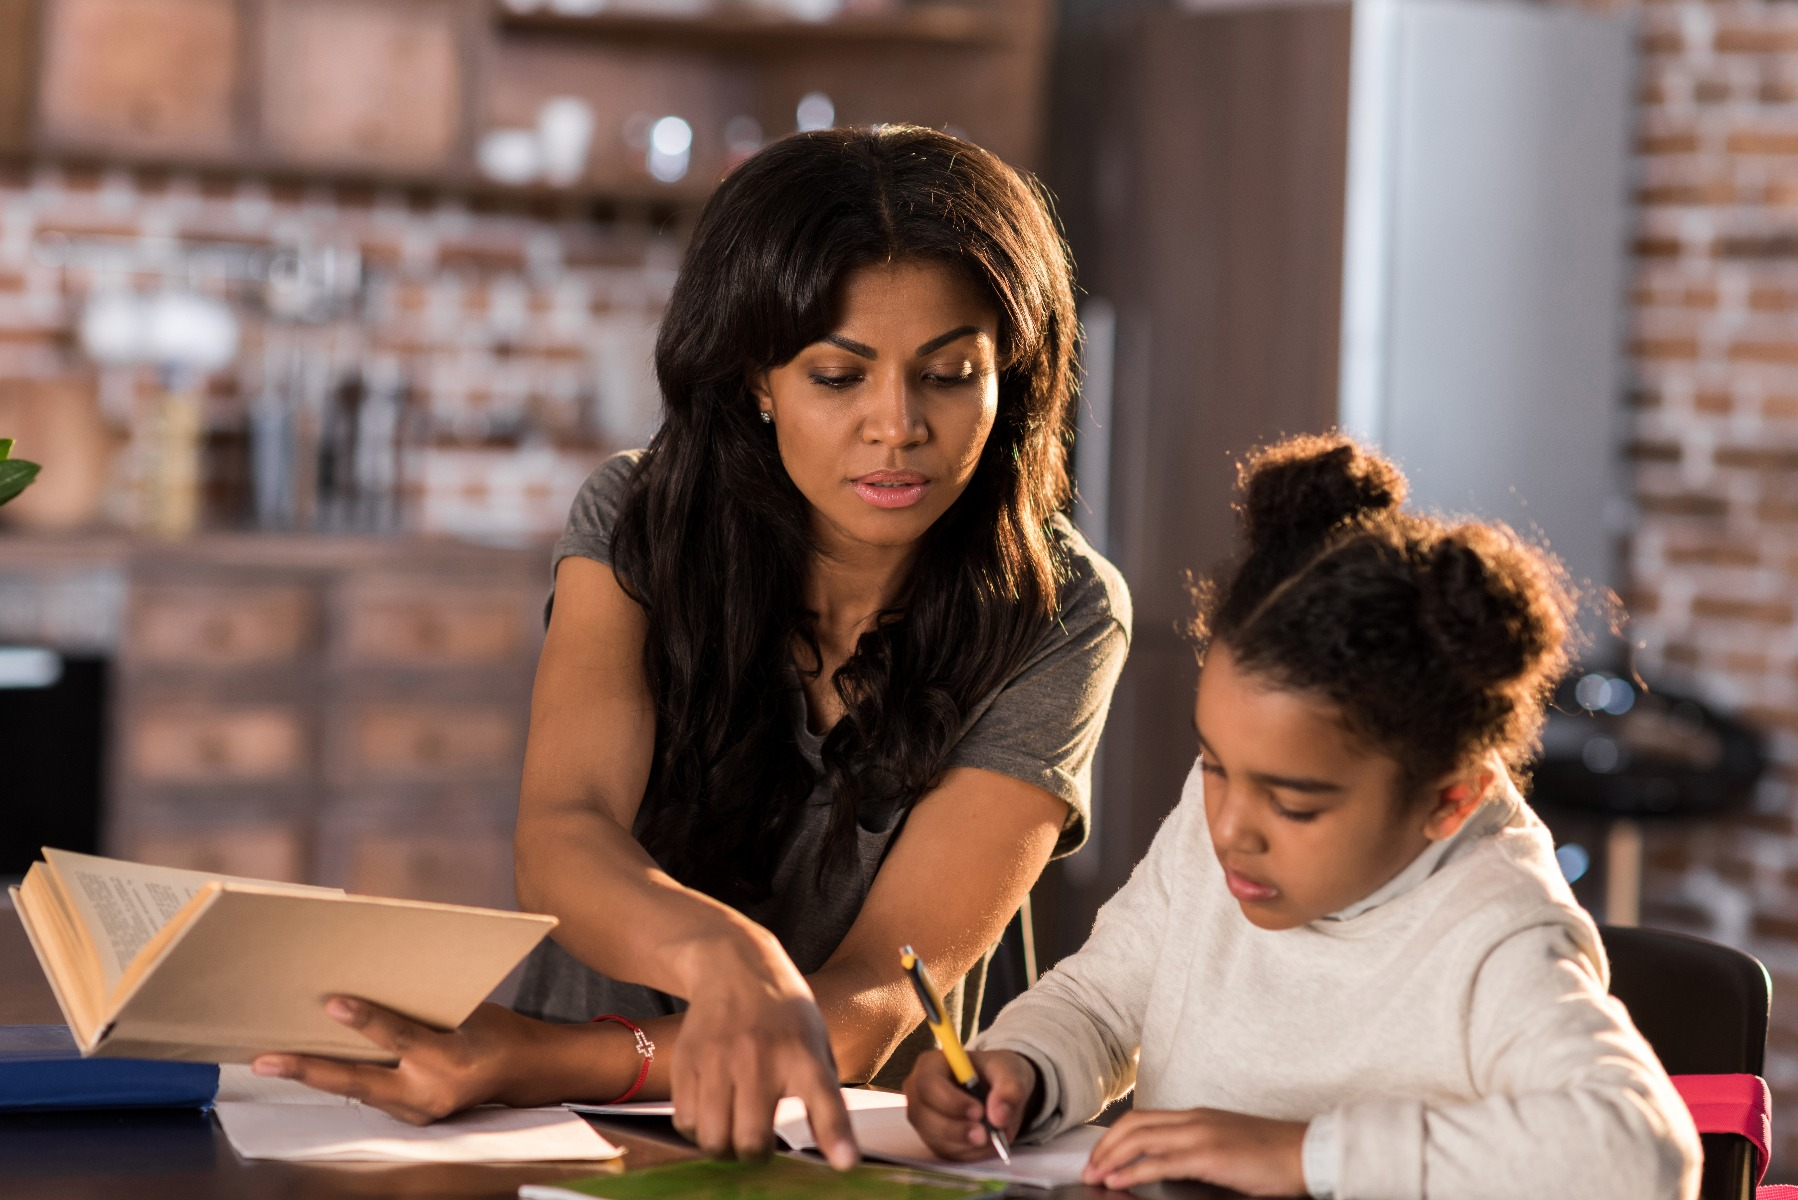 mom helping girl with school work